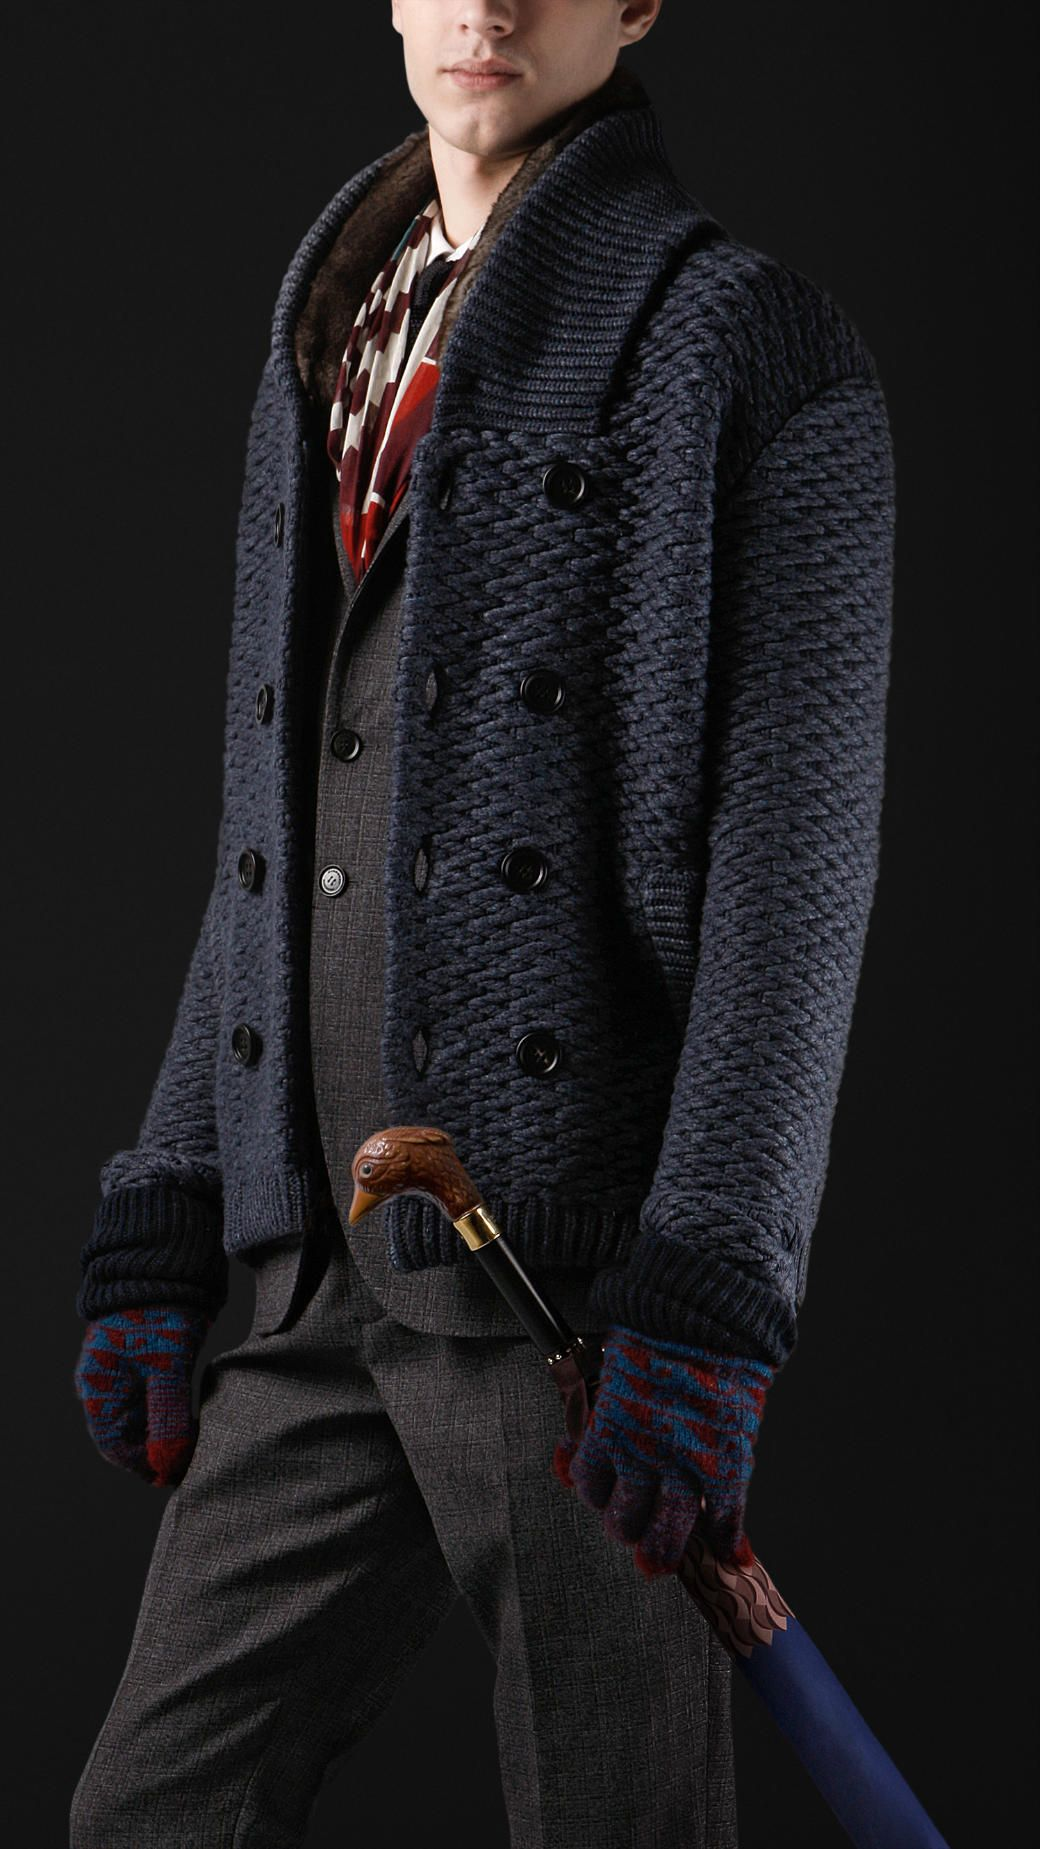 Men's Knitted Sweaters & Cardigans | Dapper